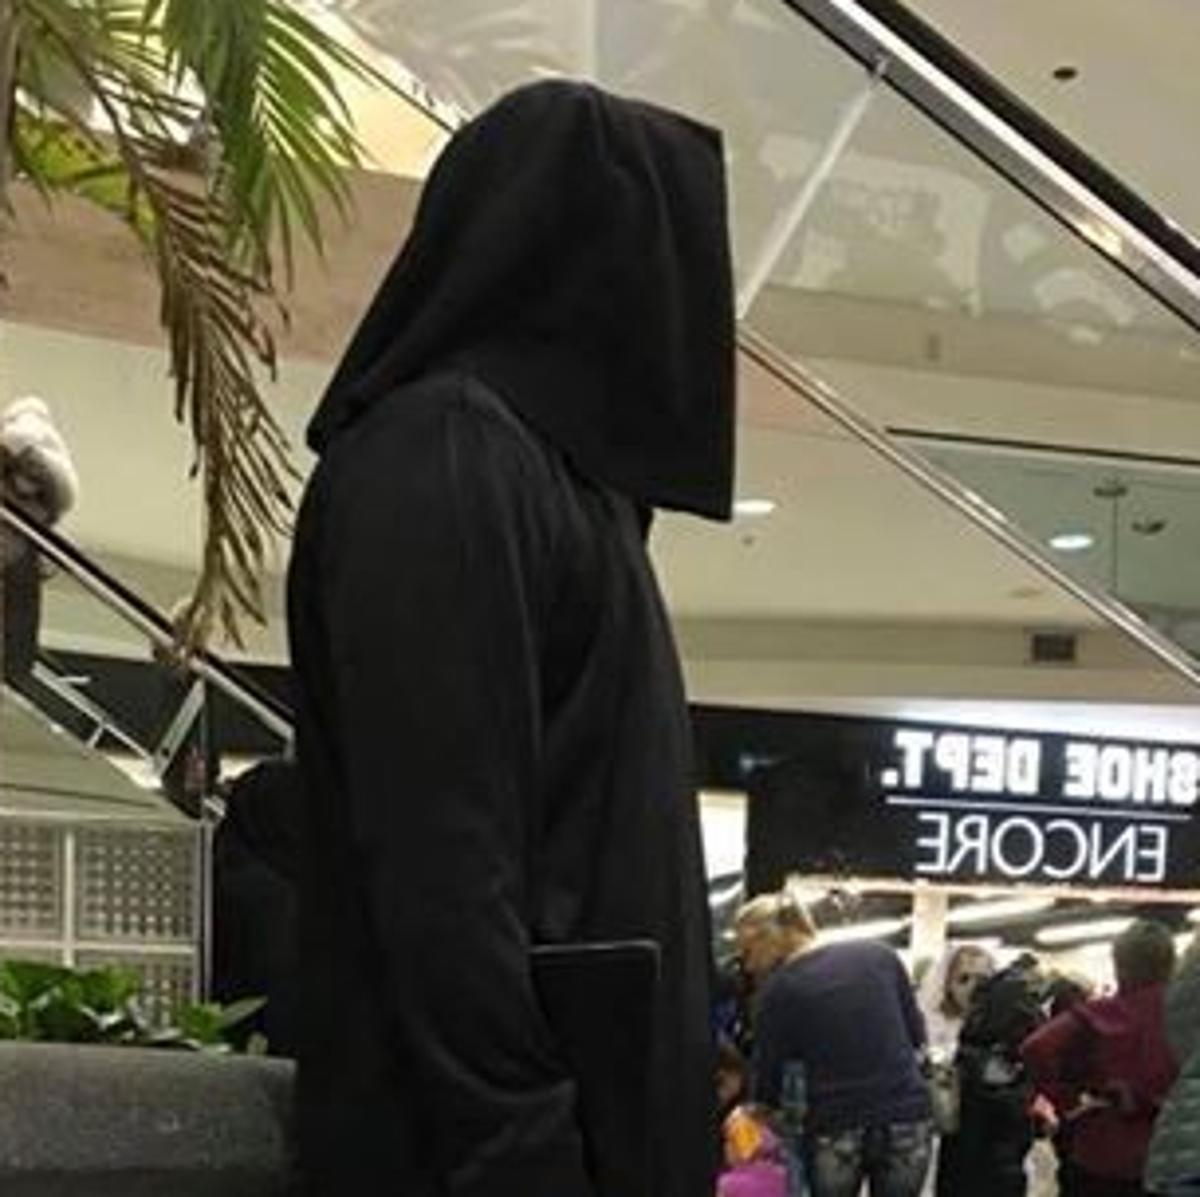 Photo of costumed person holding a gun at Oak View Mall